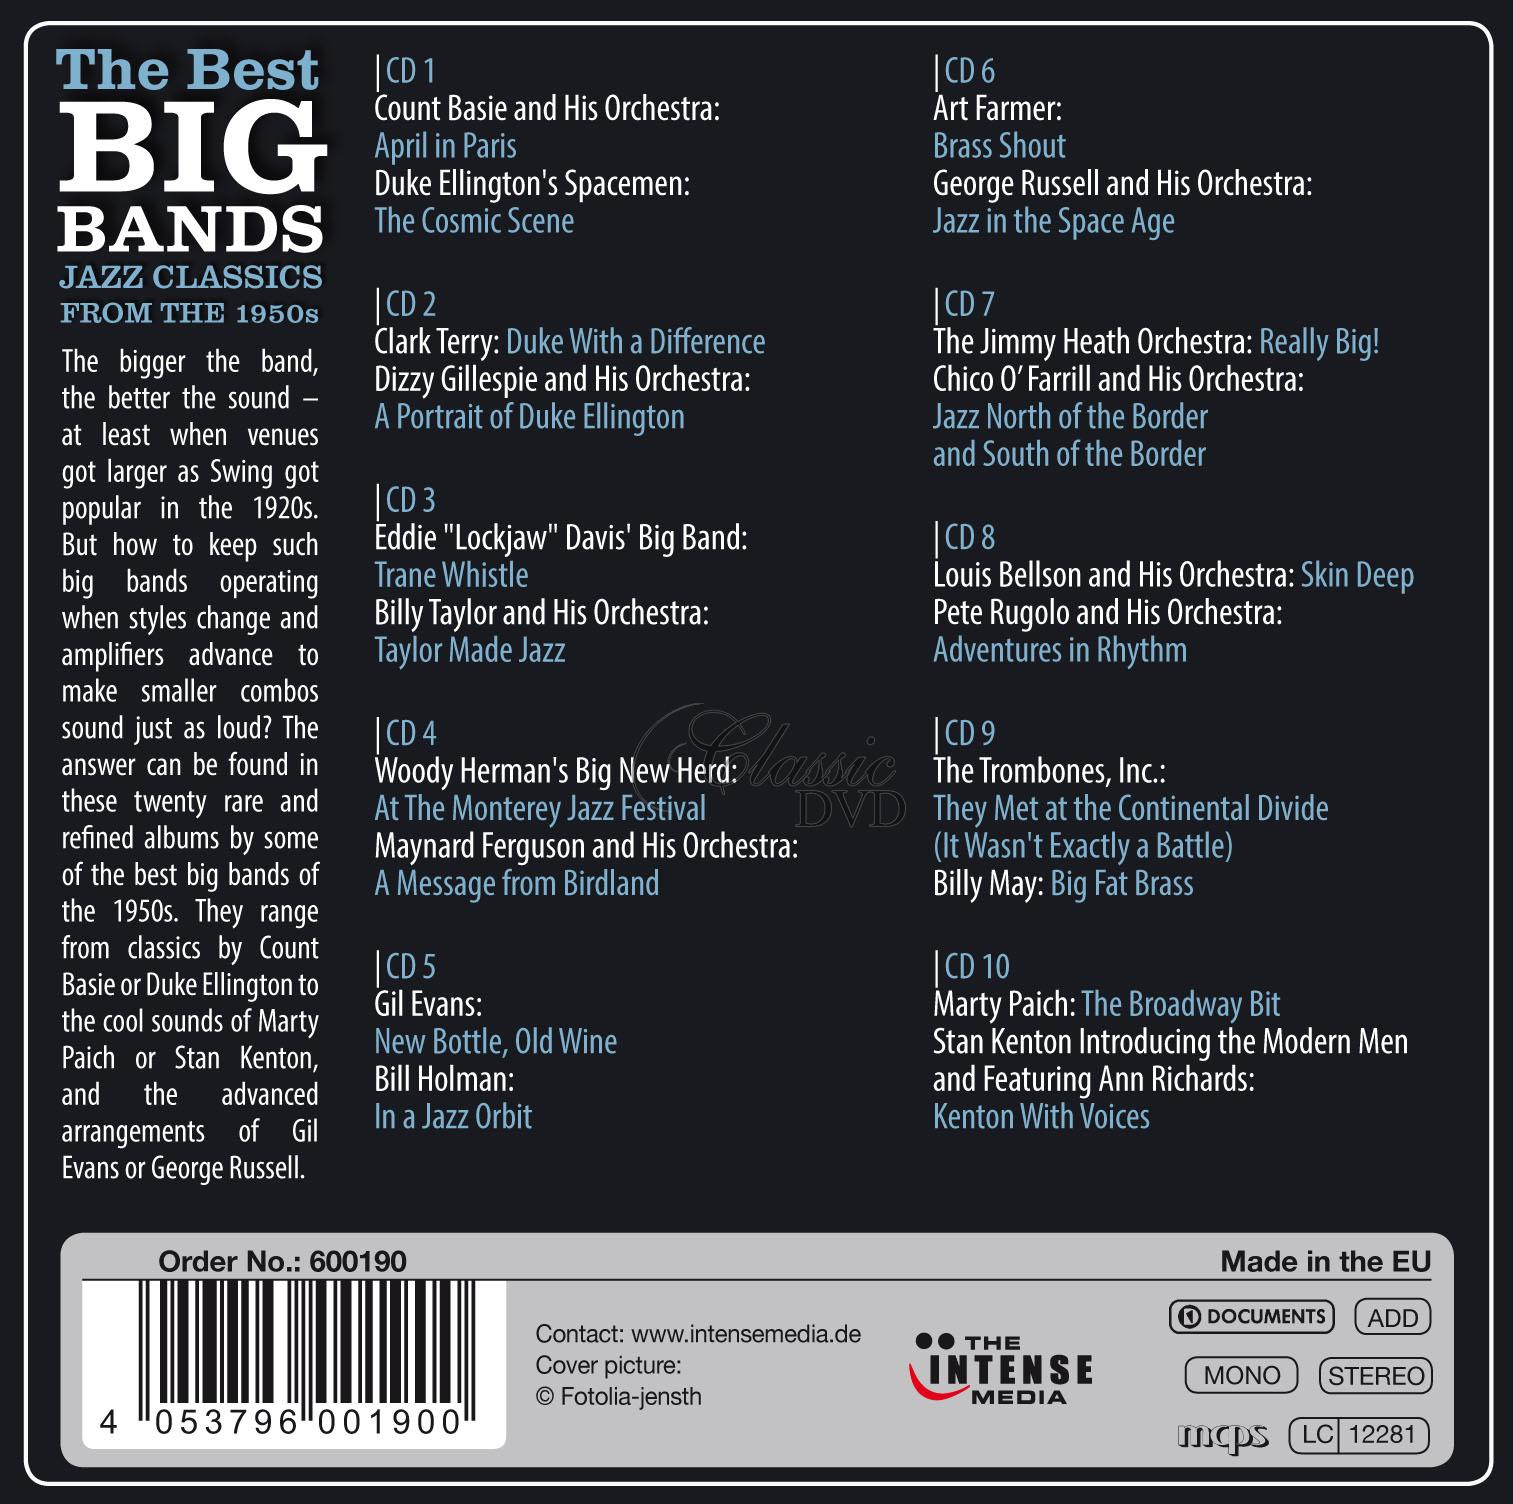 Best Big Bands - Classics from the 1950s - 20 Original Albums (10CD)